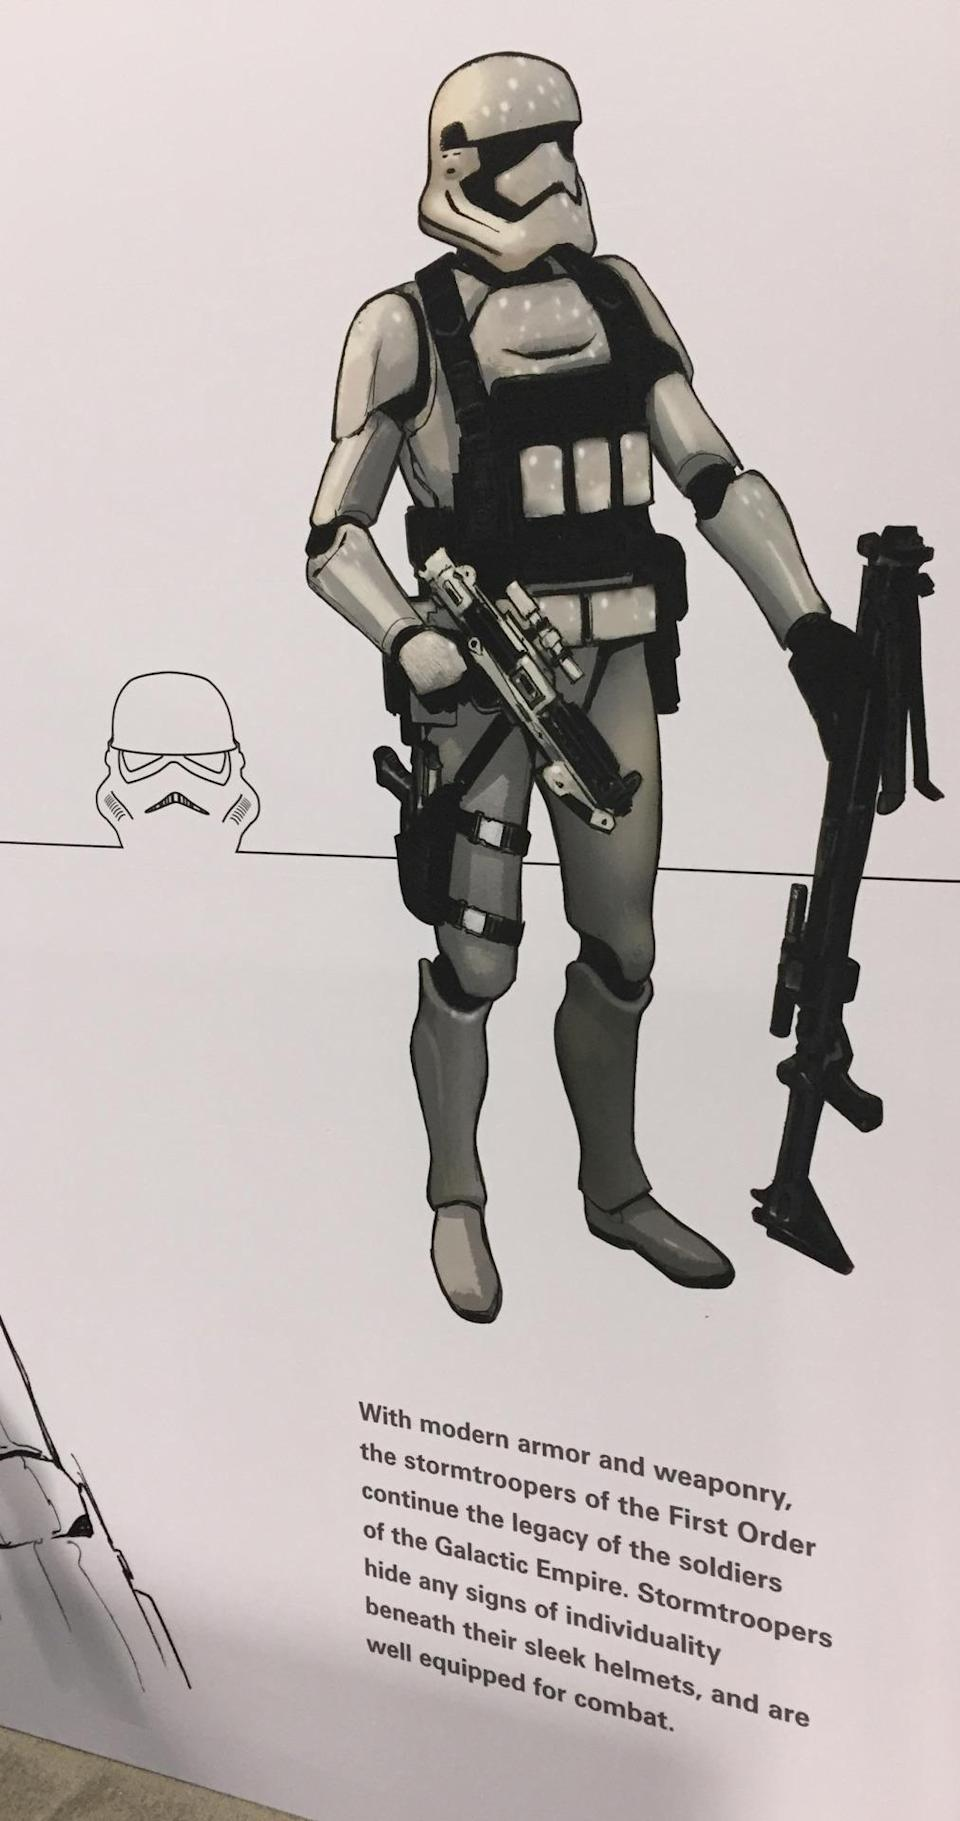 """<p>The caption reads: """"With modern armor and weaponry, the stormtroopers of the First Order continue the legacy of the soldiers of the Galactic Empire. Stormtroopers hide any signs of individuality beneath their sleek helmets, and are well equipped for combat.""""</p>"""